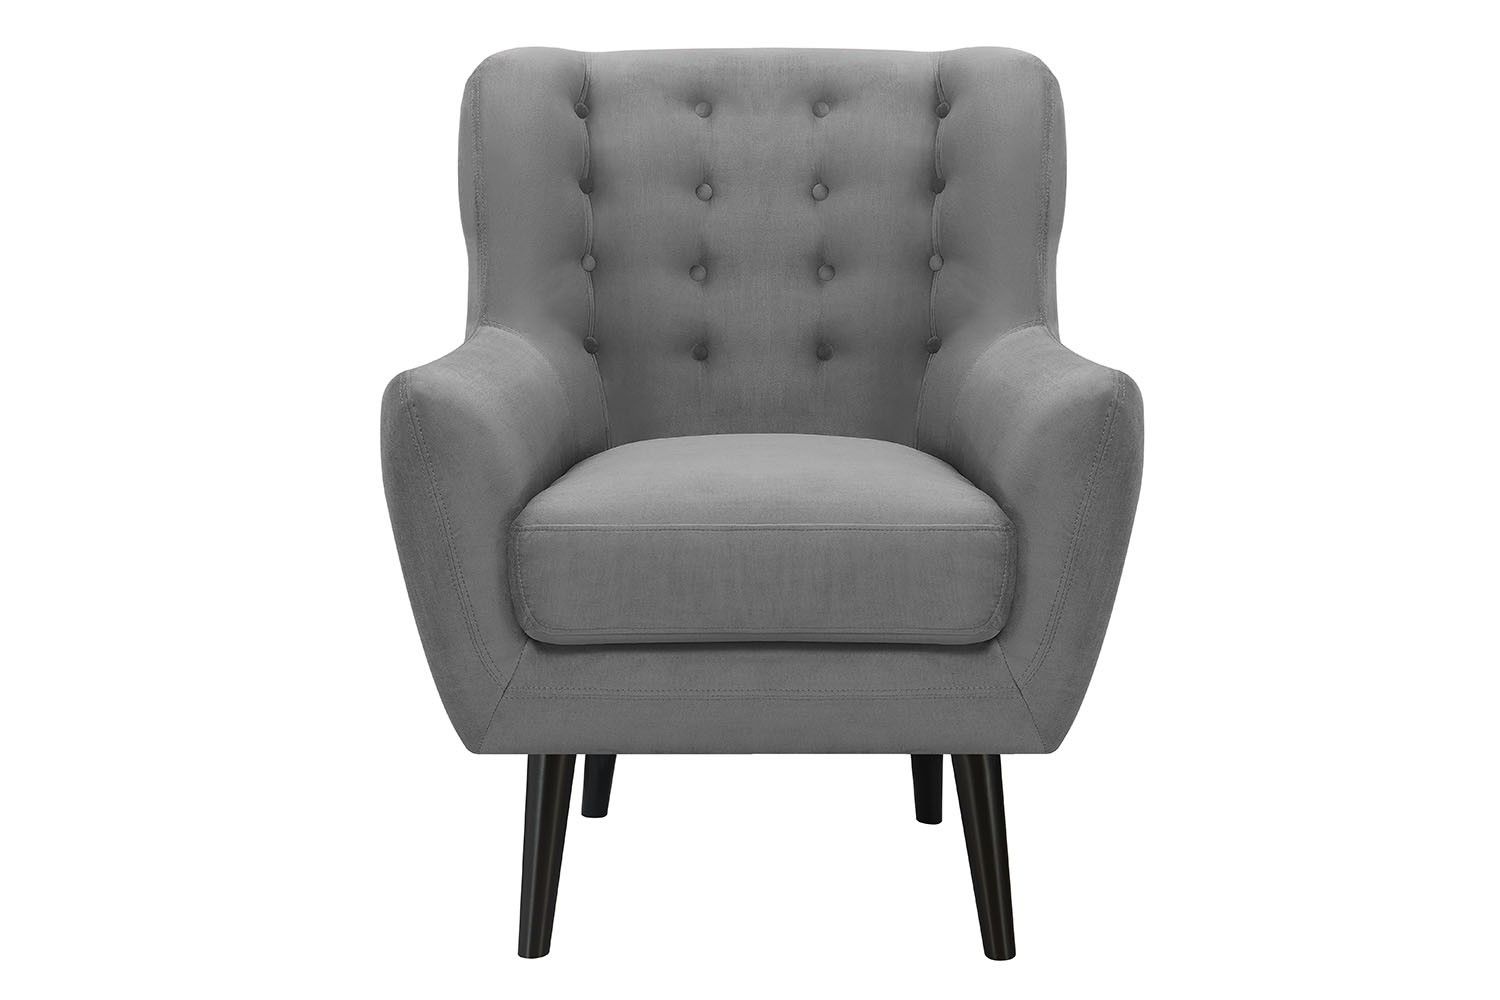 grey accent chair with arms. Lucy Gray Accent Chair Media Image 2 Grey With Arms E